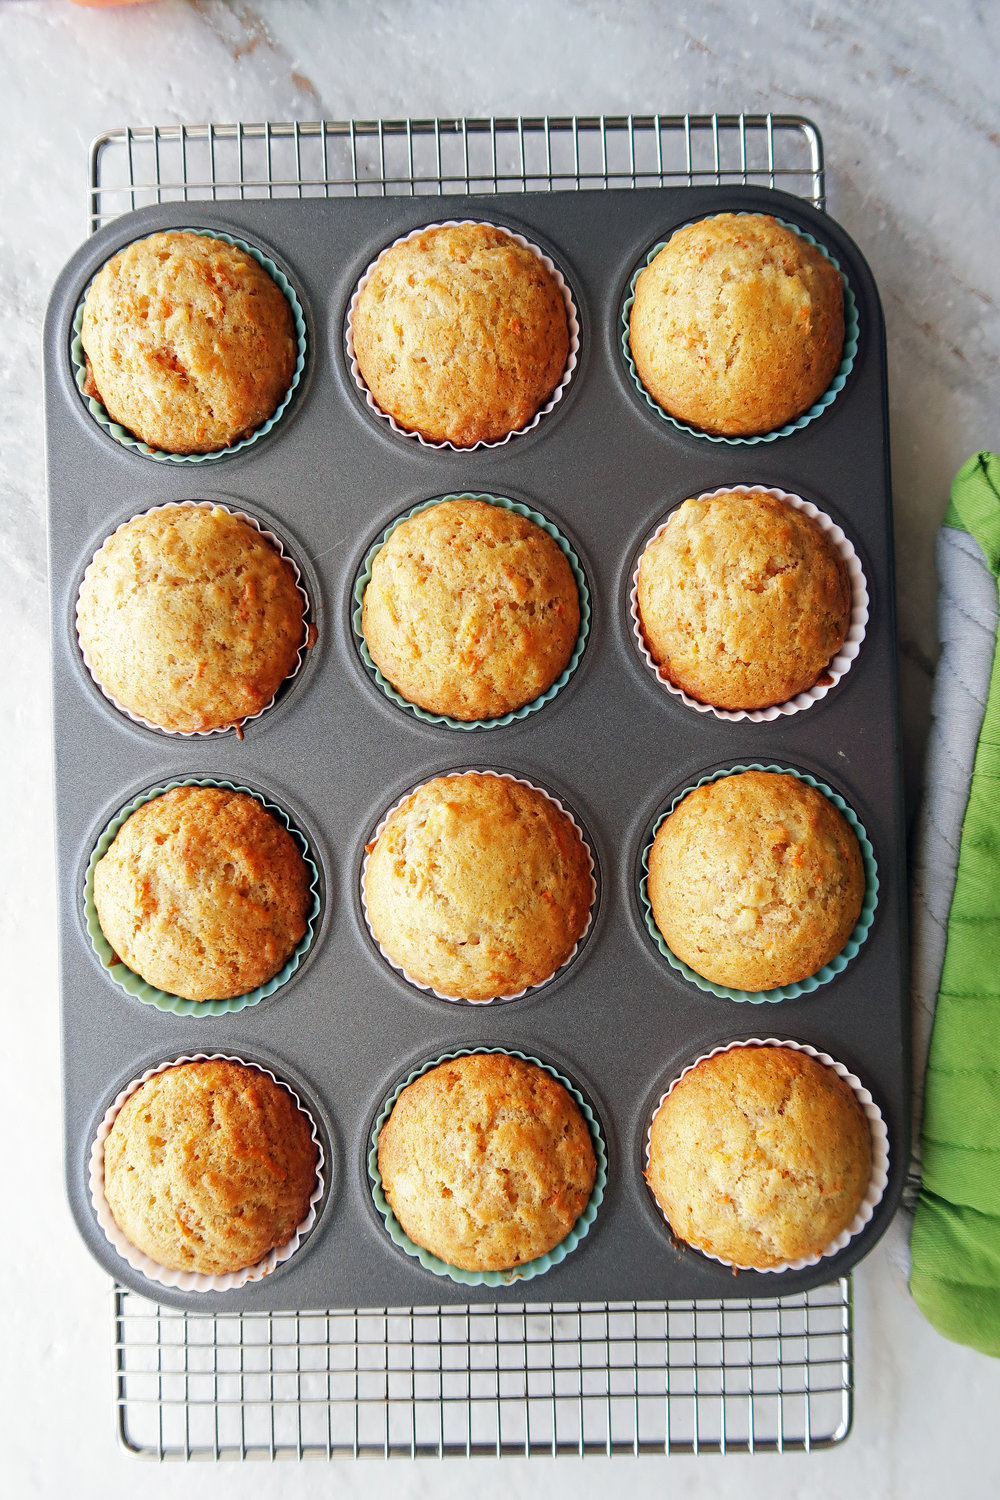 A dozen golden brown baked Easy Carrot Pineapple Muffins in a muffin tin.